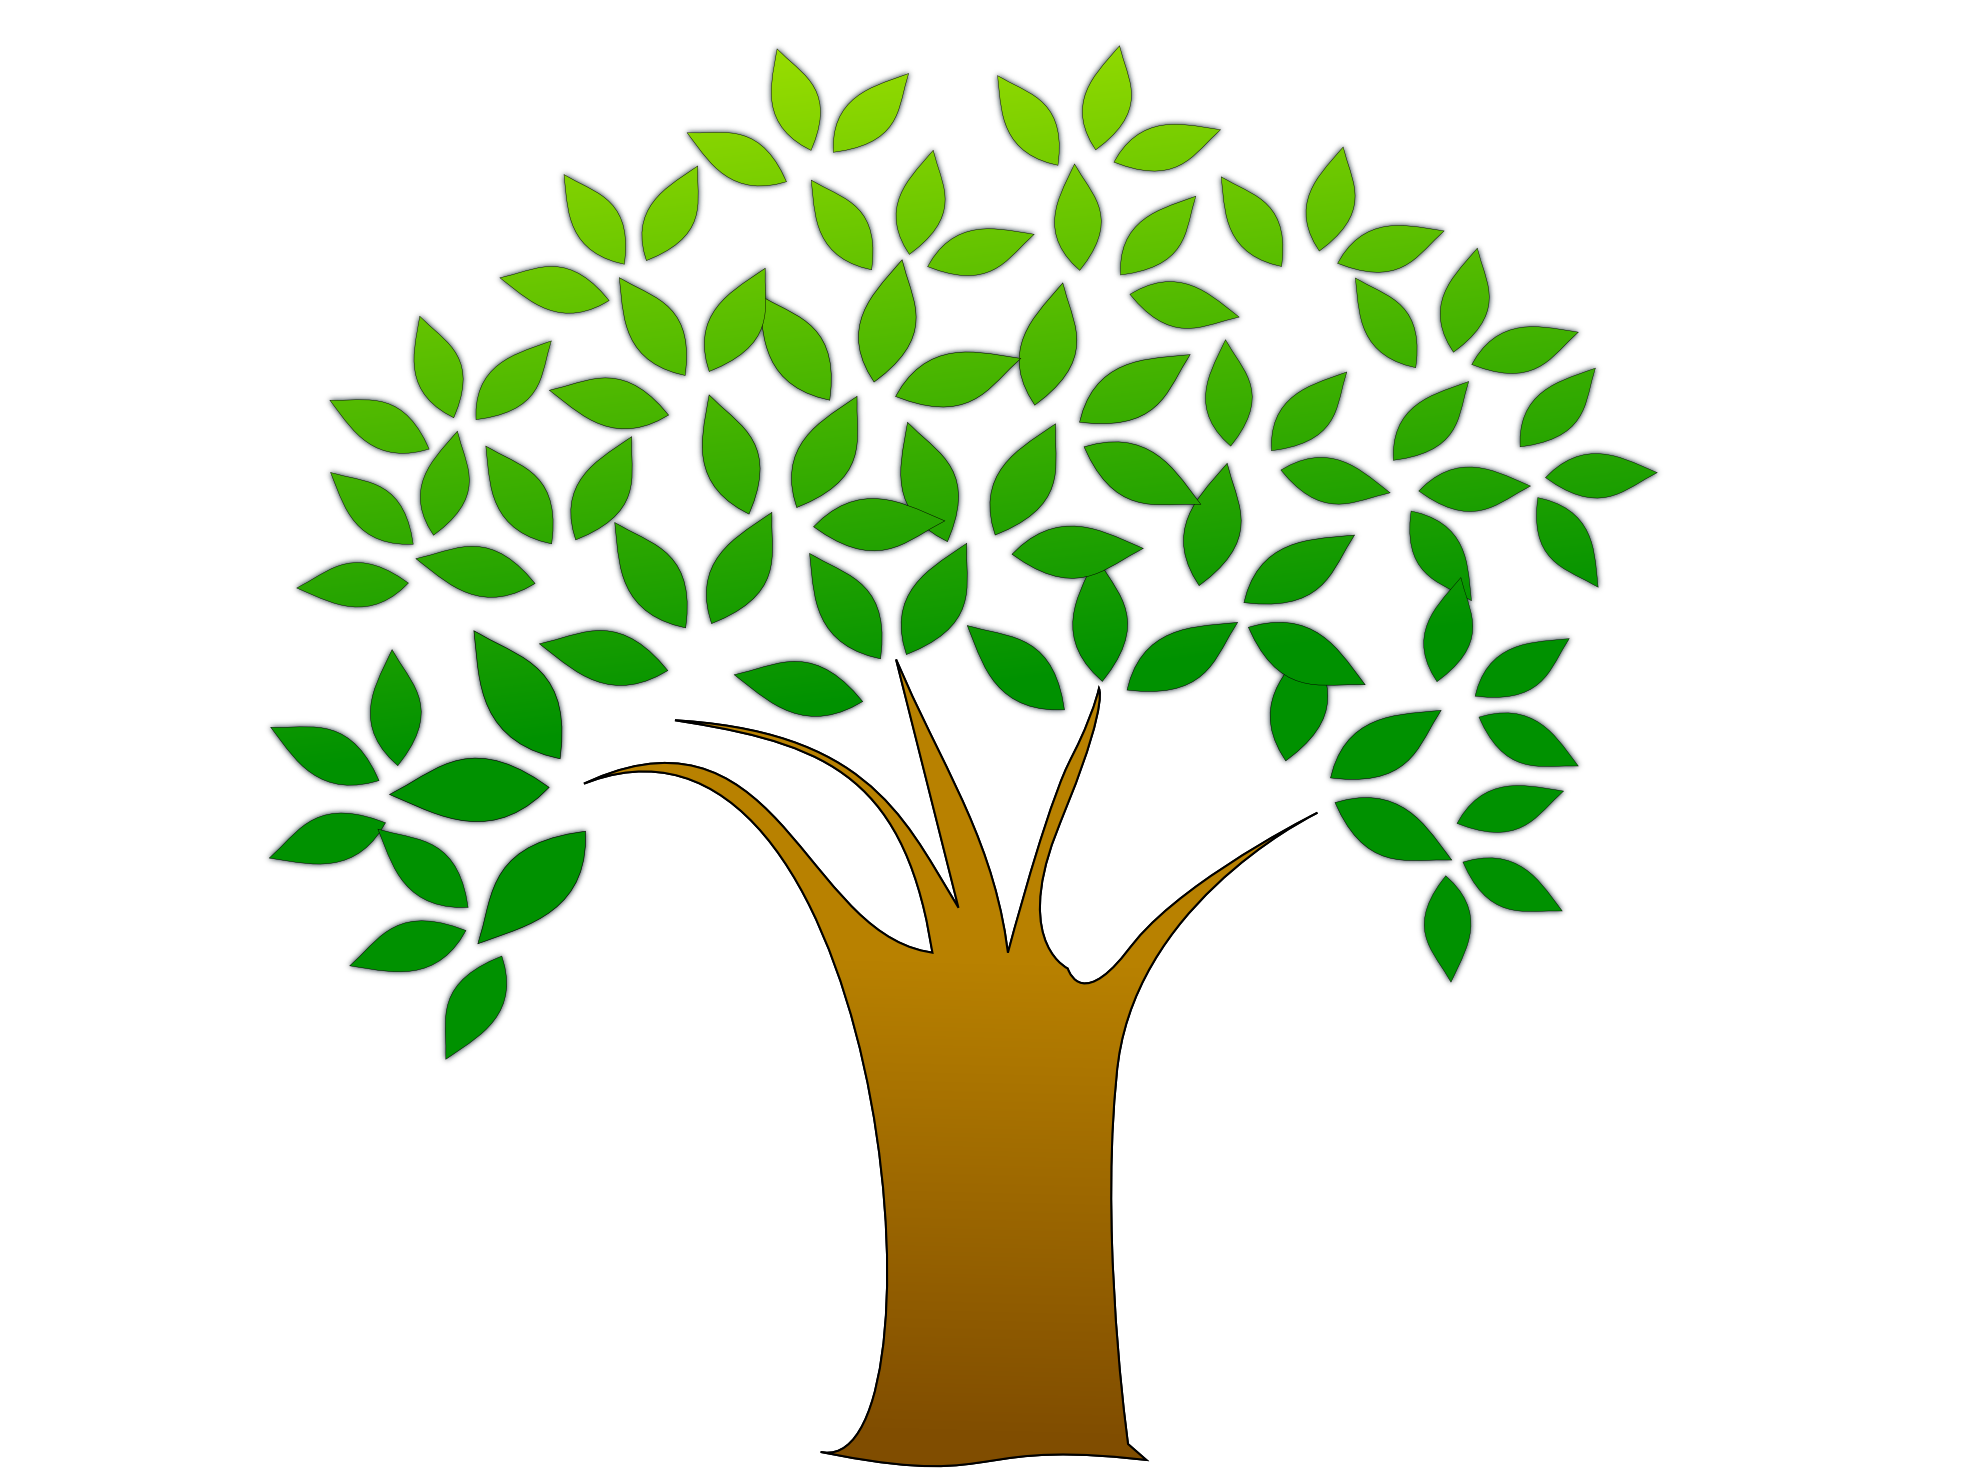 Barren clipart autumn tree Tree Free clipart Images Clipart